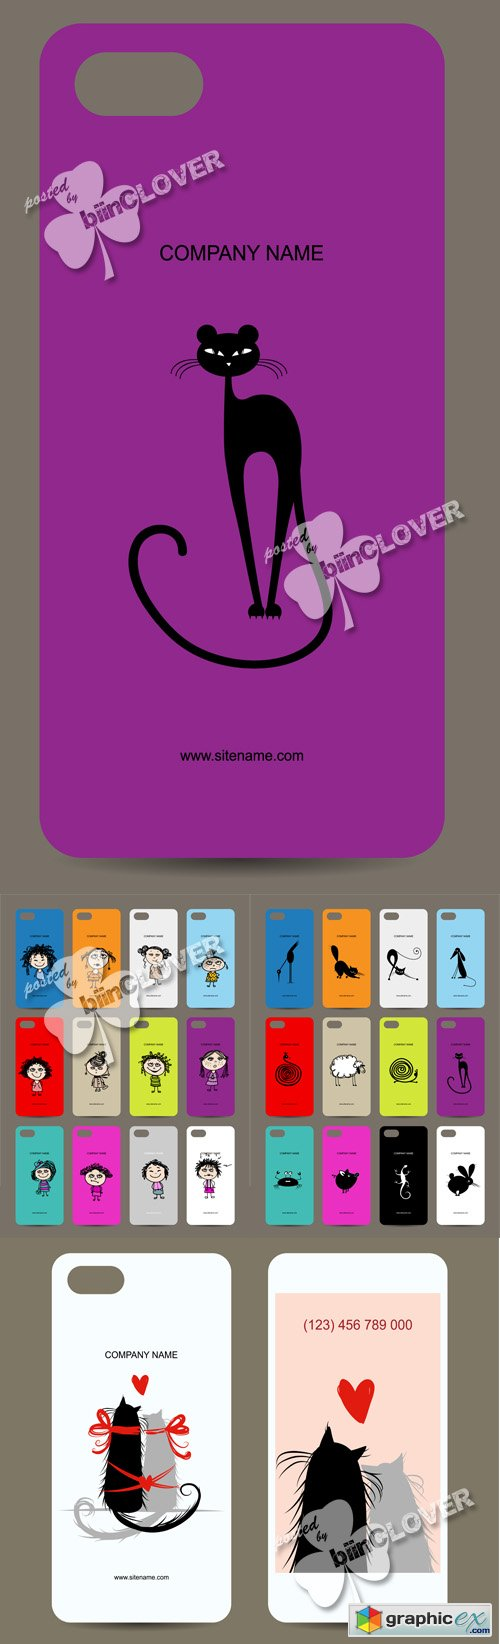 Vector Mobile phone cover back design 0510